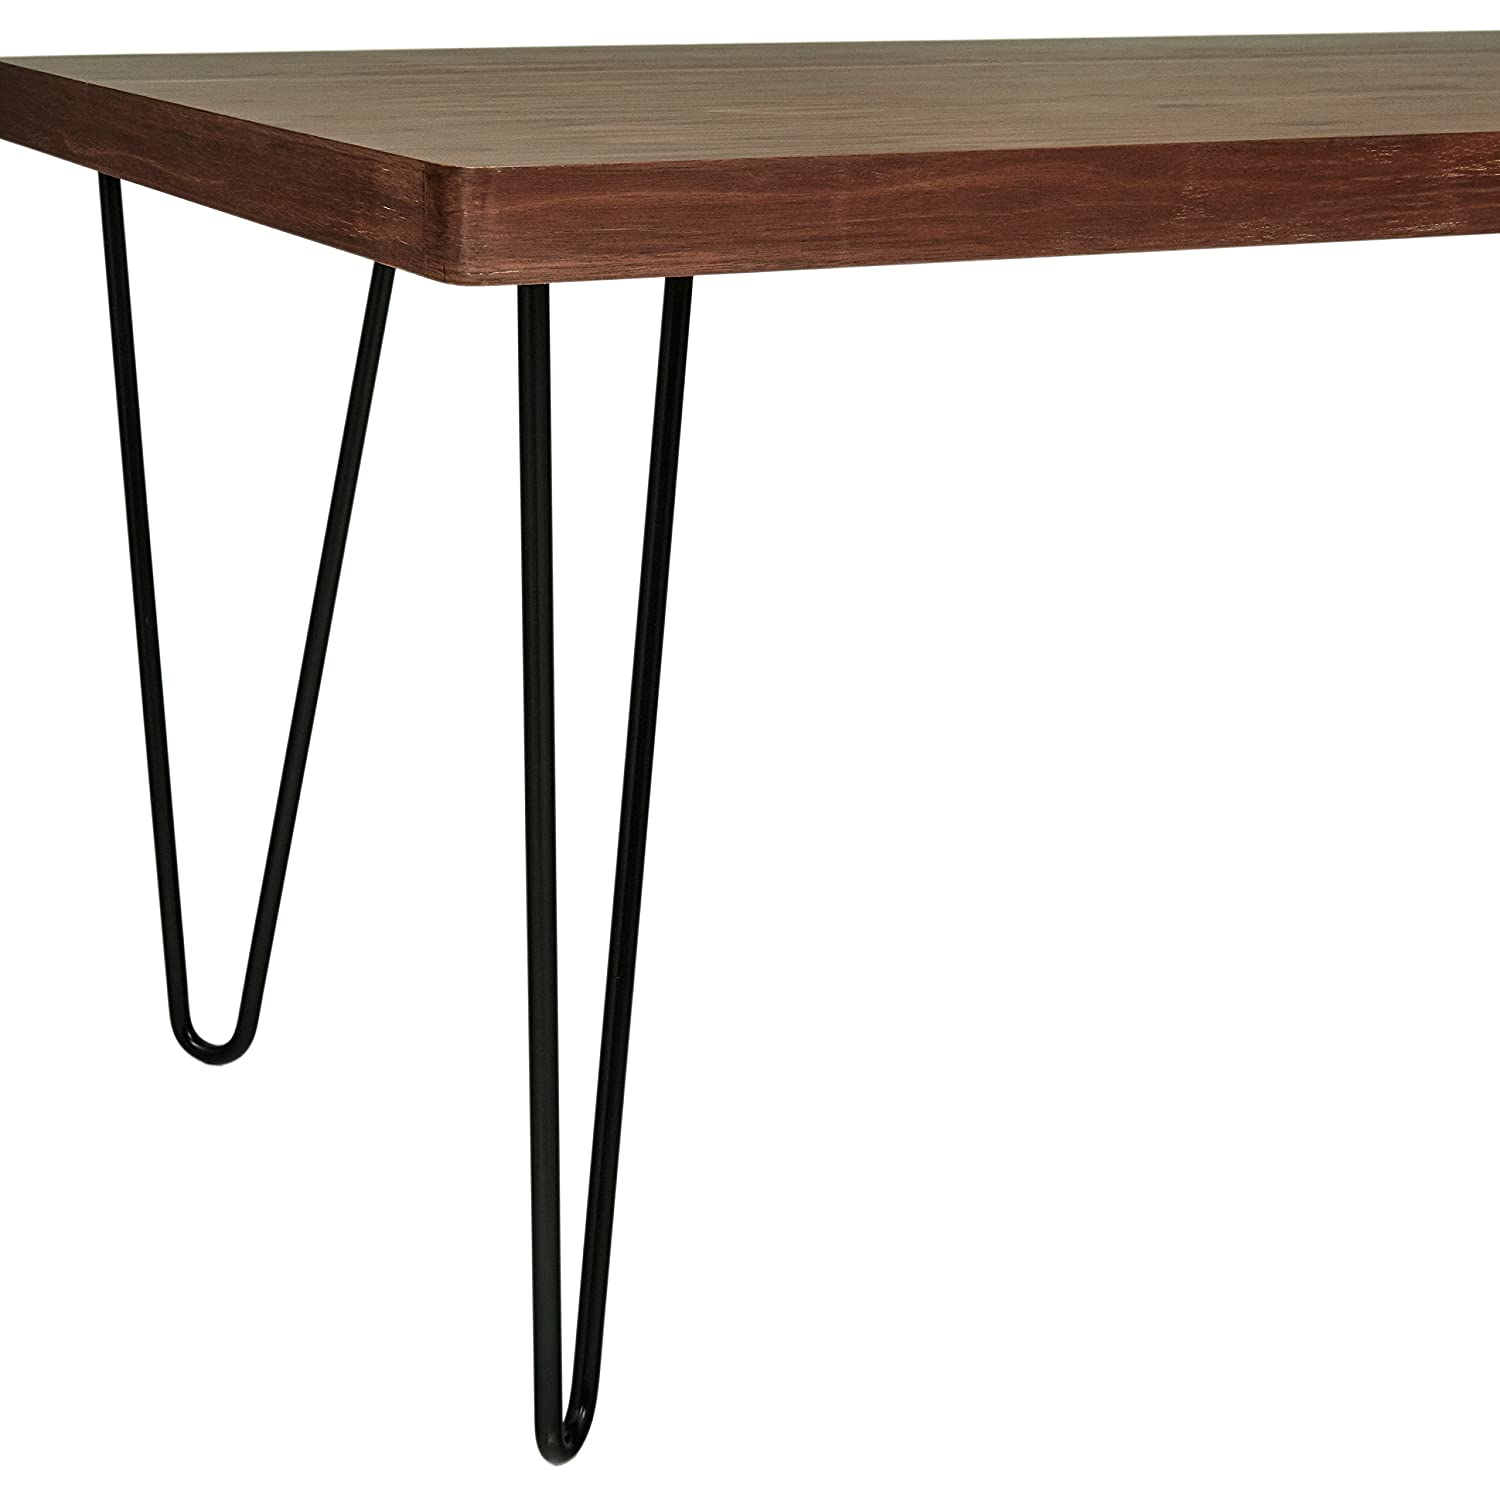 Amazon.com: Rivet Hairpin - Mesa consola de madera y metal ...